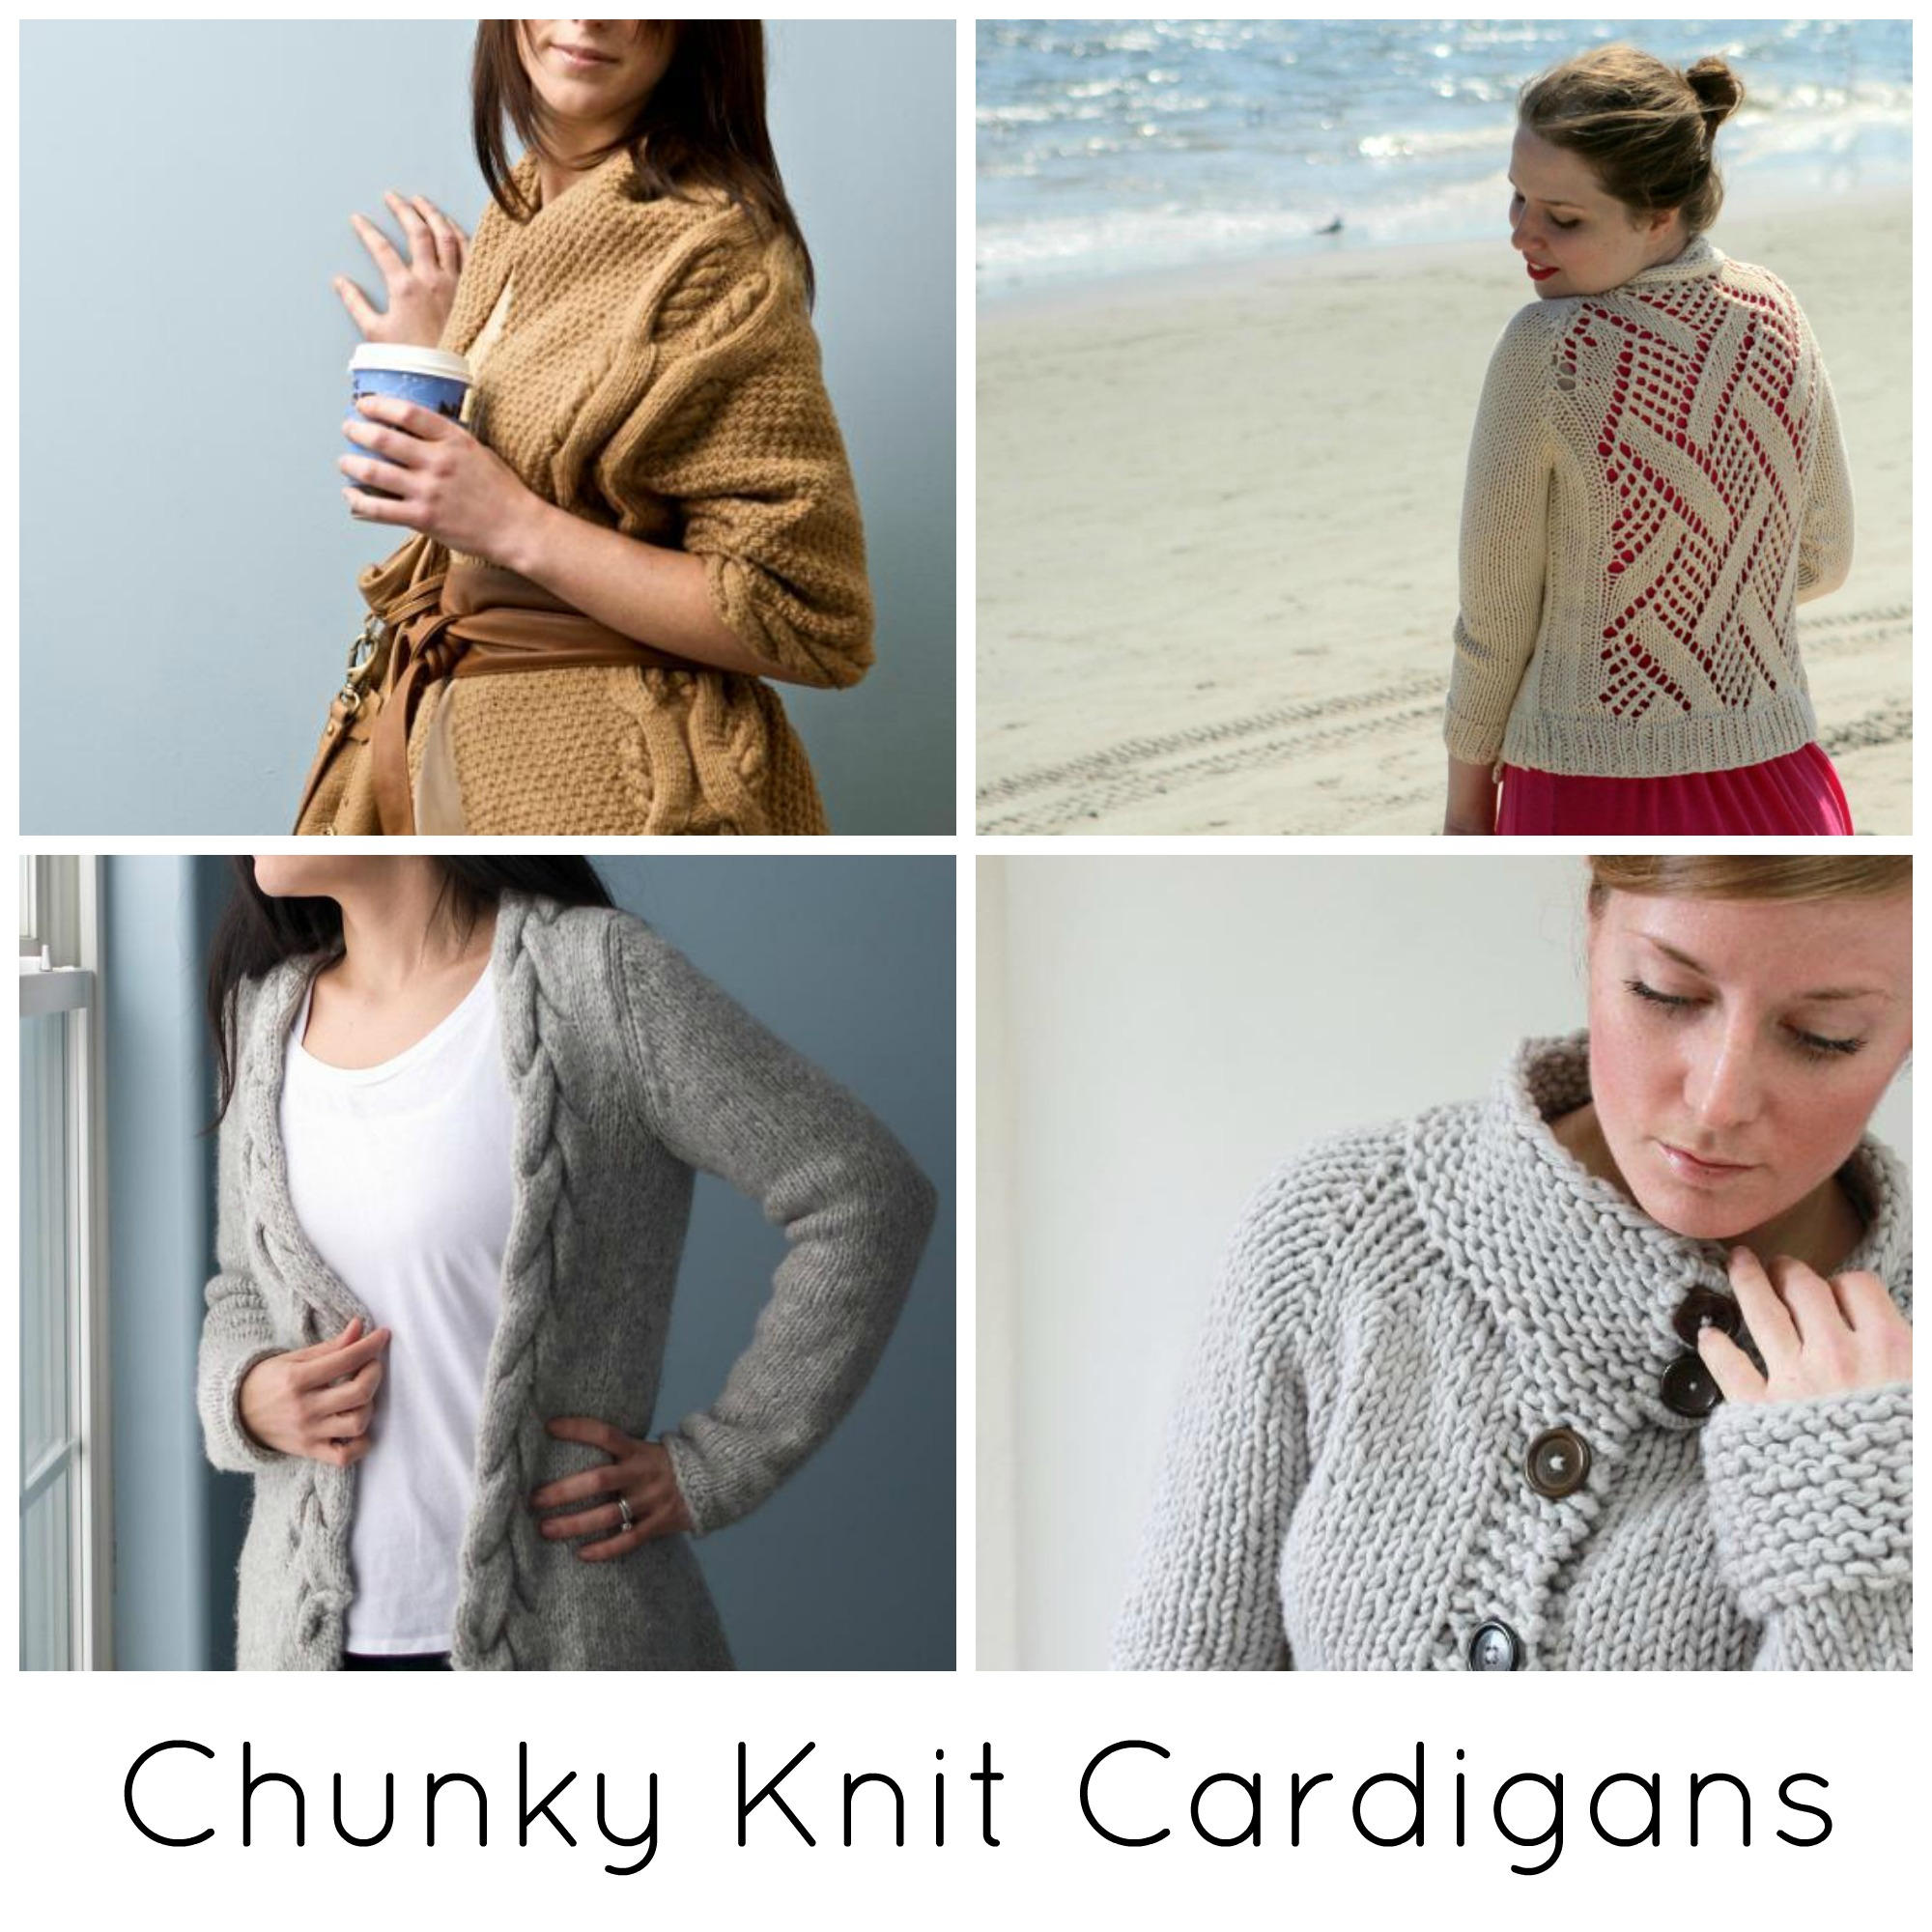 Knit Sweaters Patterns The Coziest Chunky Knit Cardigan Patterns Ever